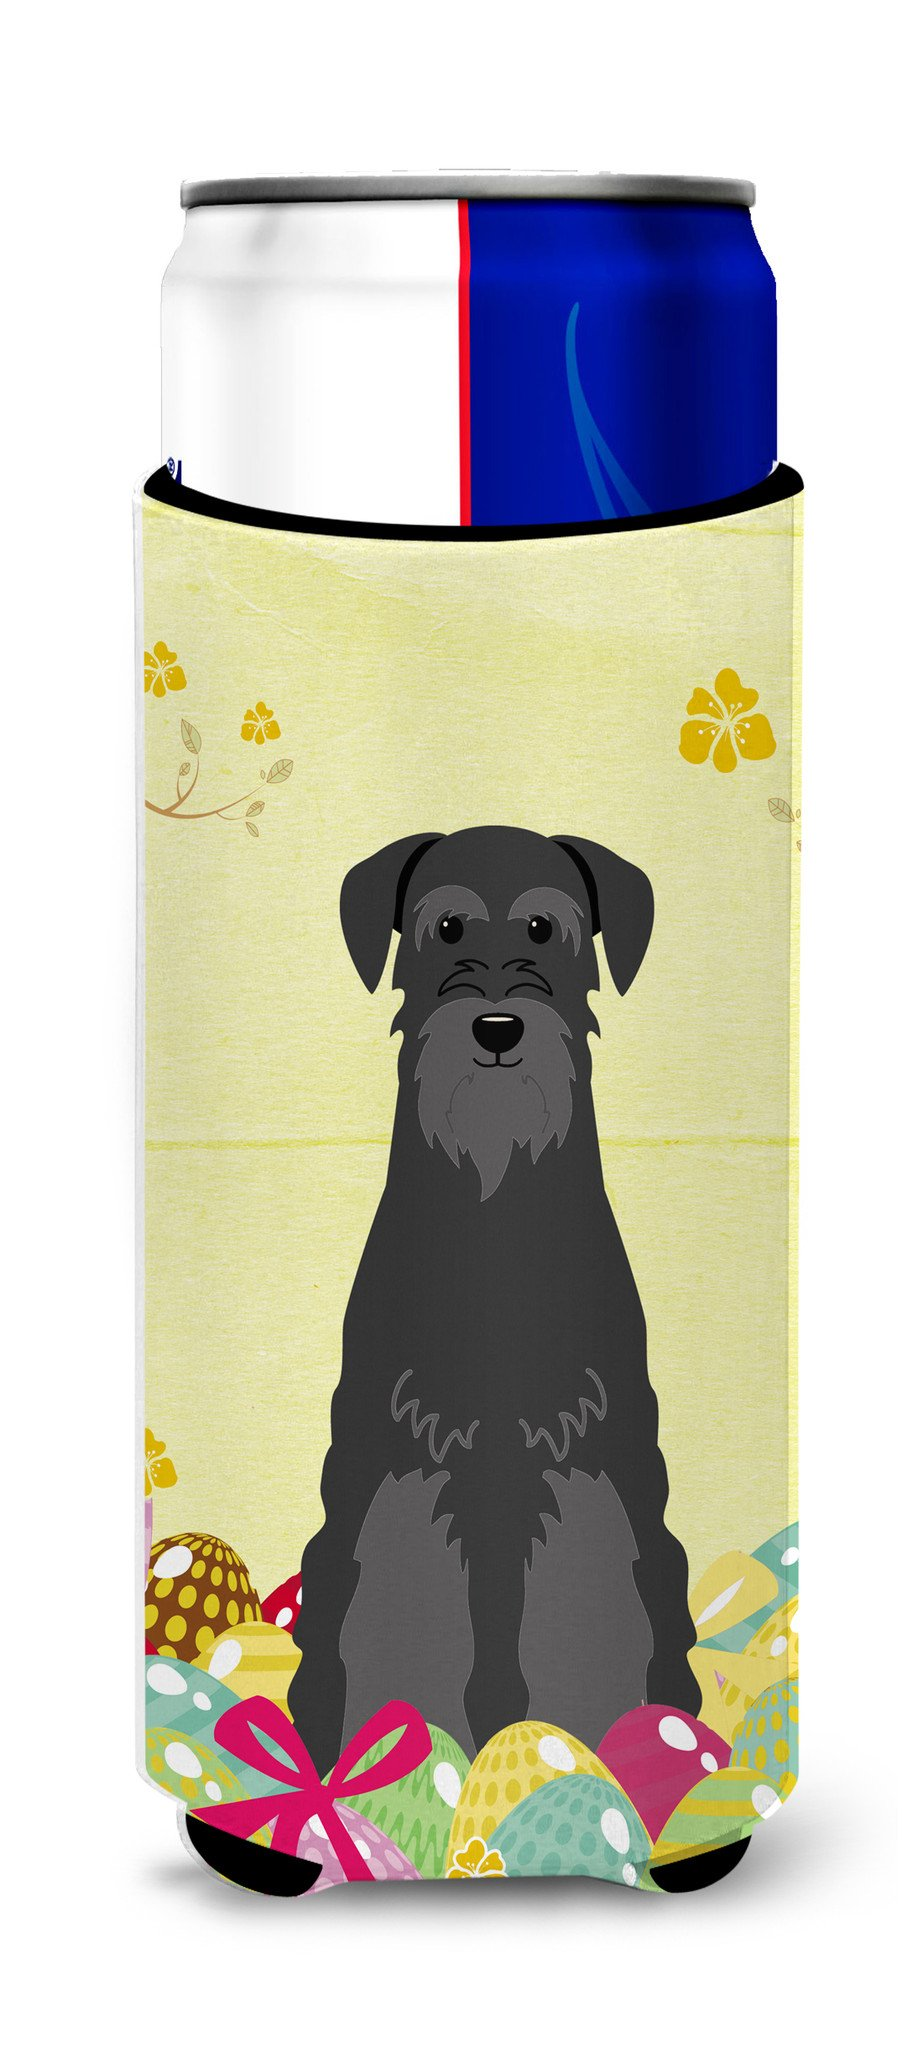 Easter Eggs Standard Schnauzer Black Michelob Ultra Hugger for slim cans BB6032MUK by Caroline's Treasures